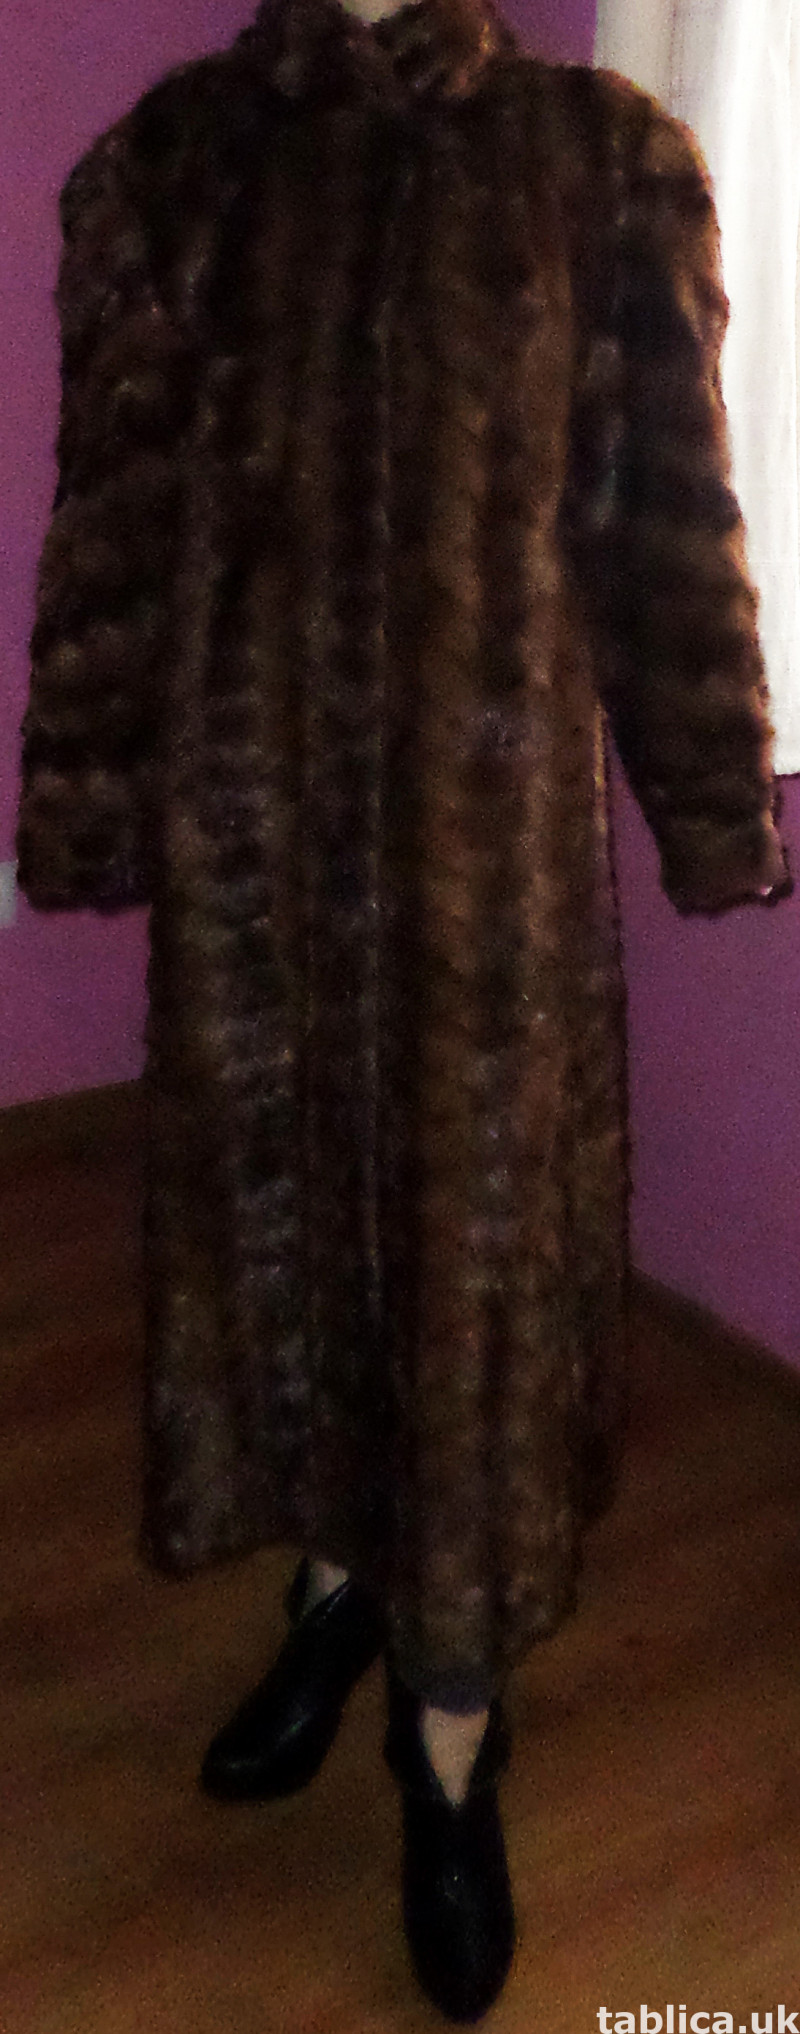 For Sale: Long Fur Coat from Mink Bellies  5